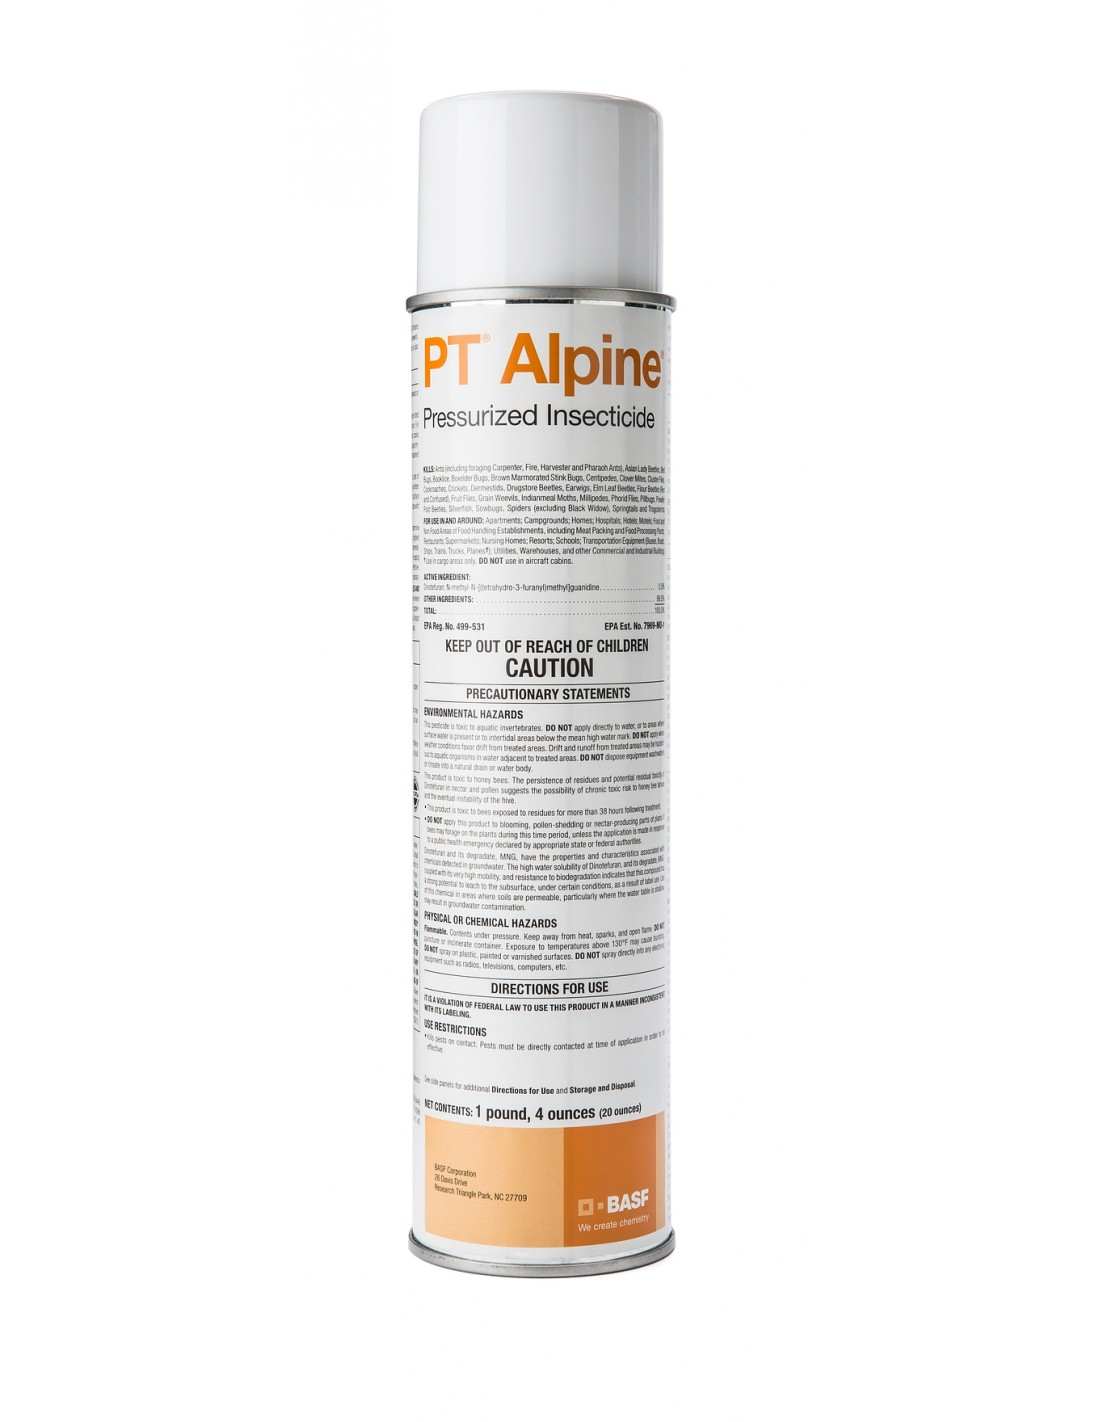 Is this product effective for powderpost beetles?  I have a few areas to treat in my crawl space.